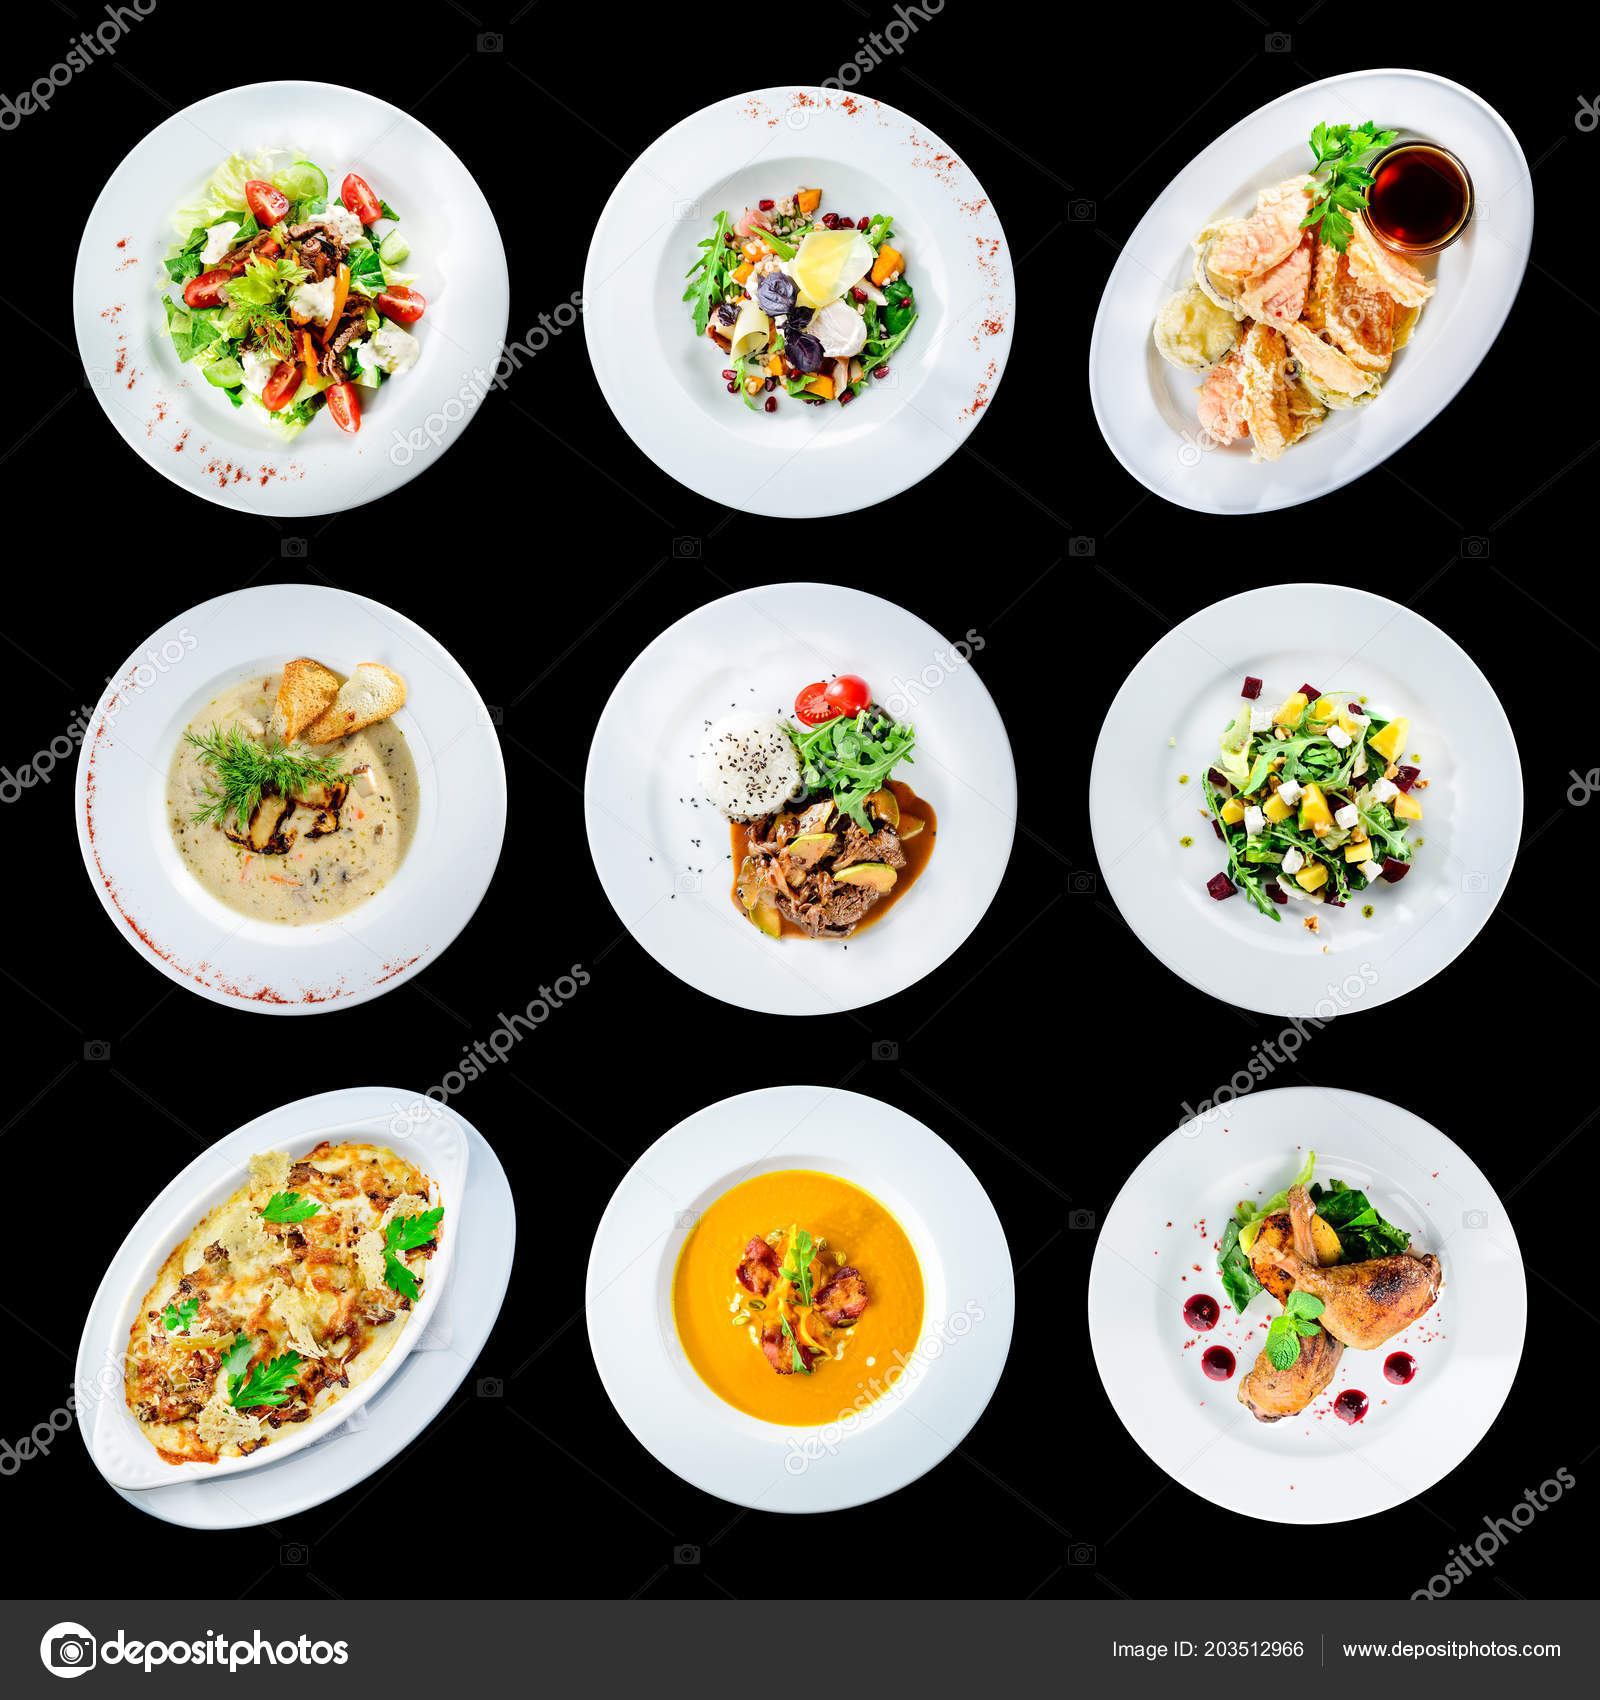 Set Of Various Plates Of Food Isolated On Black Background With Stock Photo Image By C Smspsy 203512966